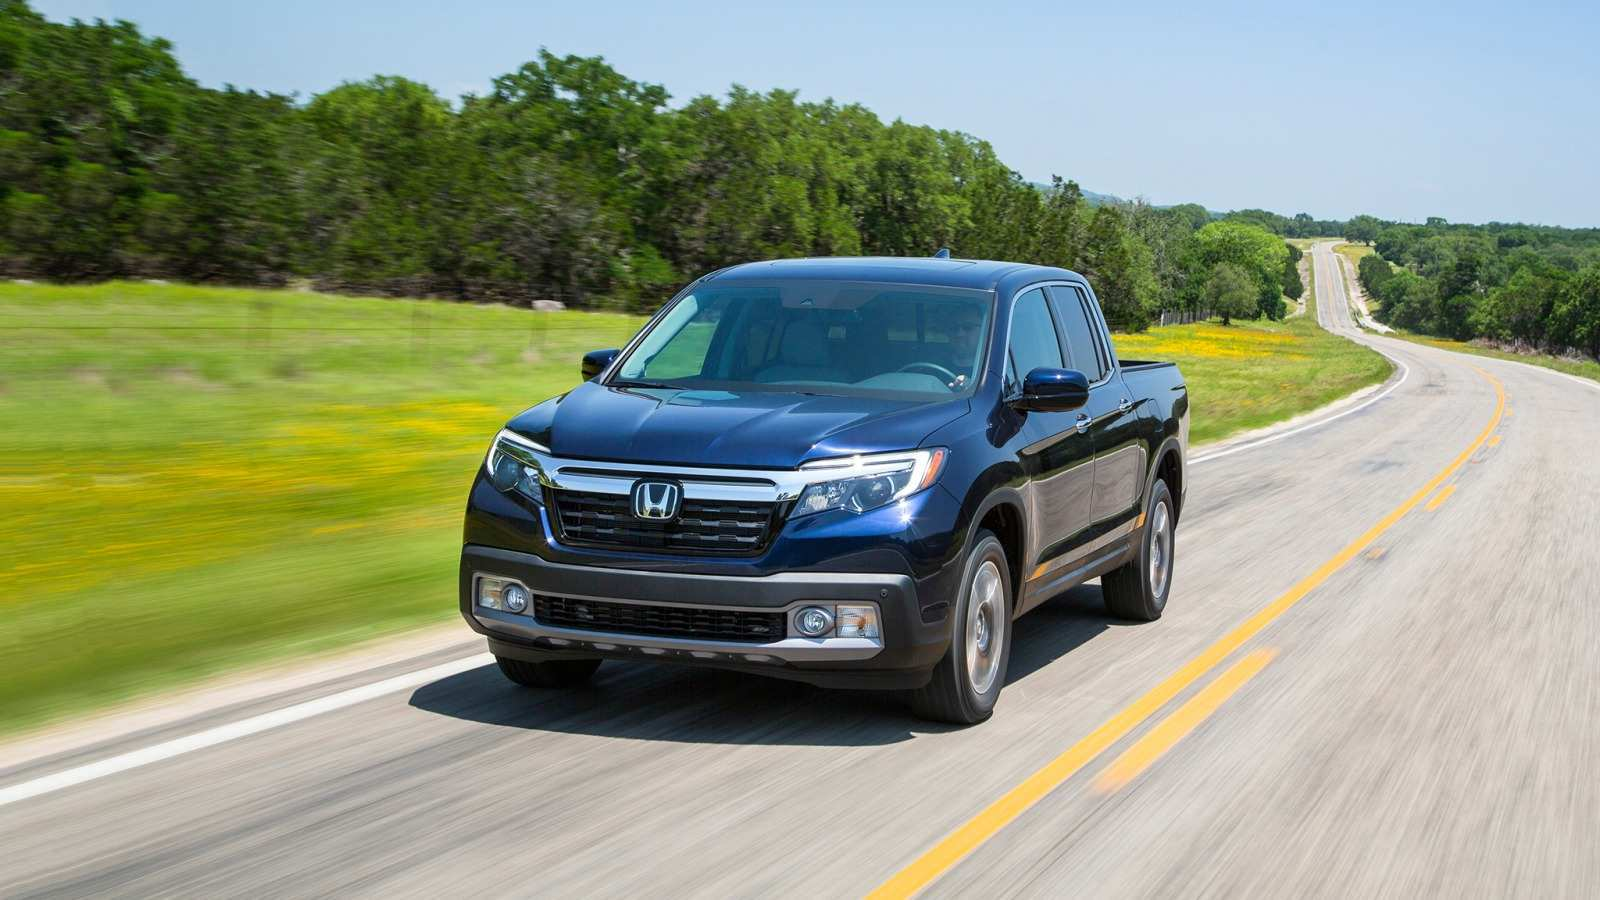 79 All New 2019 Honda Ridgeline Black Edition Pricing by 2019 Honda Ridgeline Black Edition